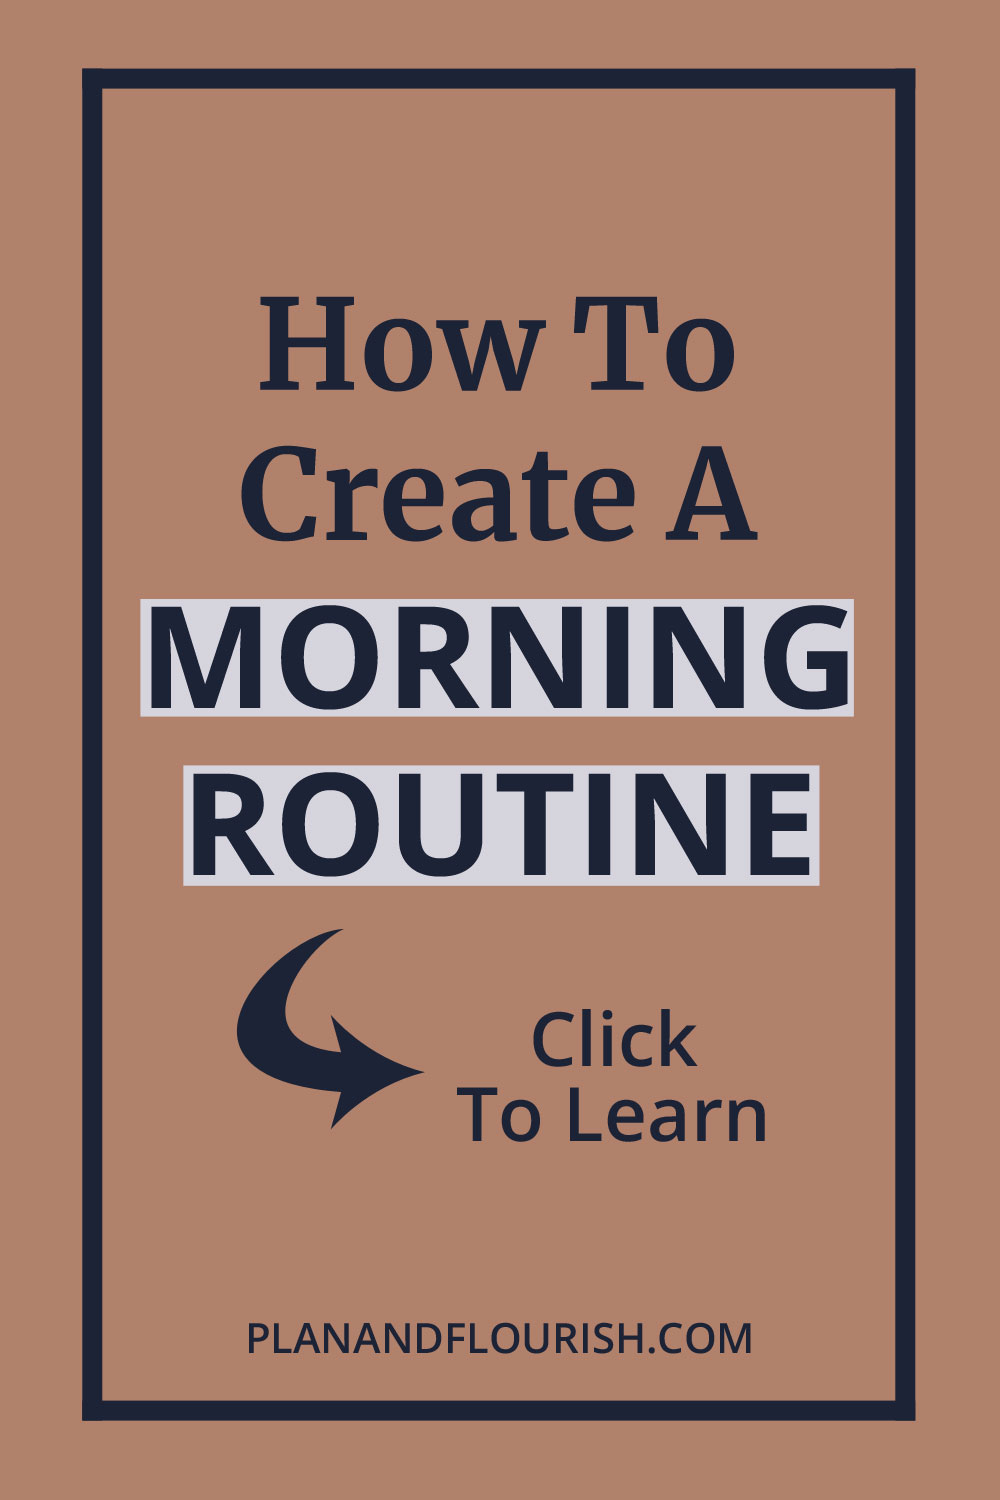 Learn how to create a morning routine | Click To Read